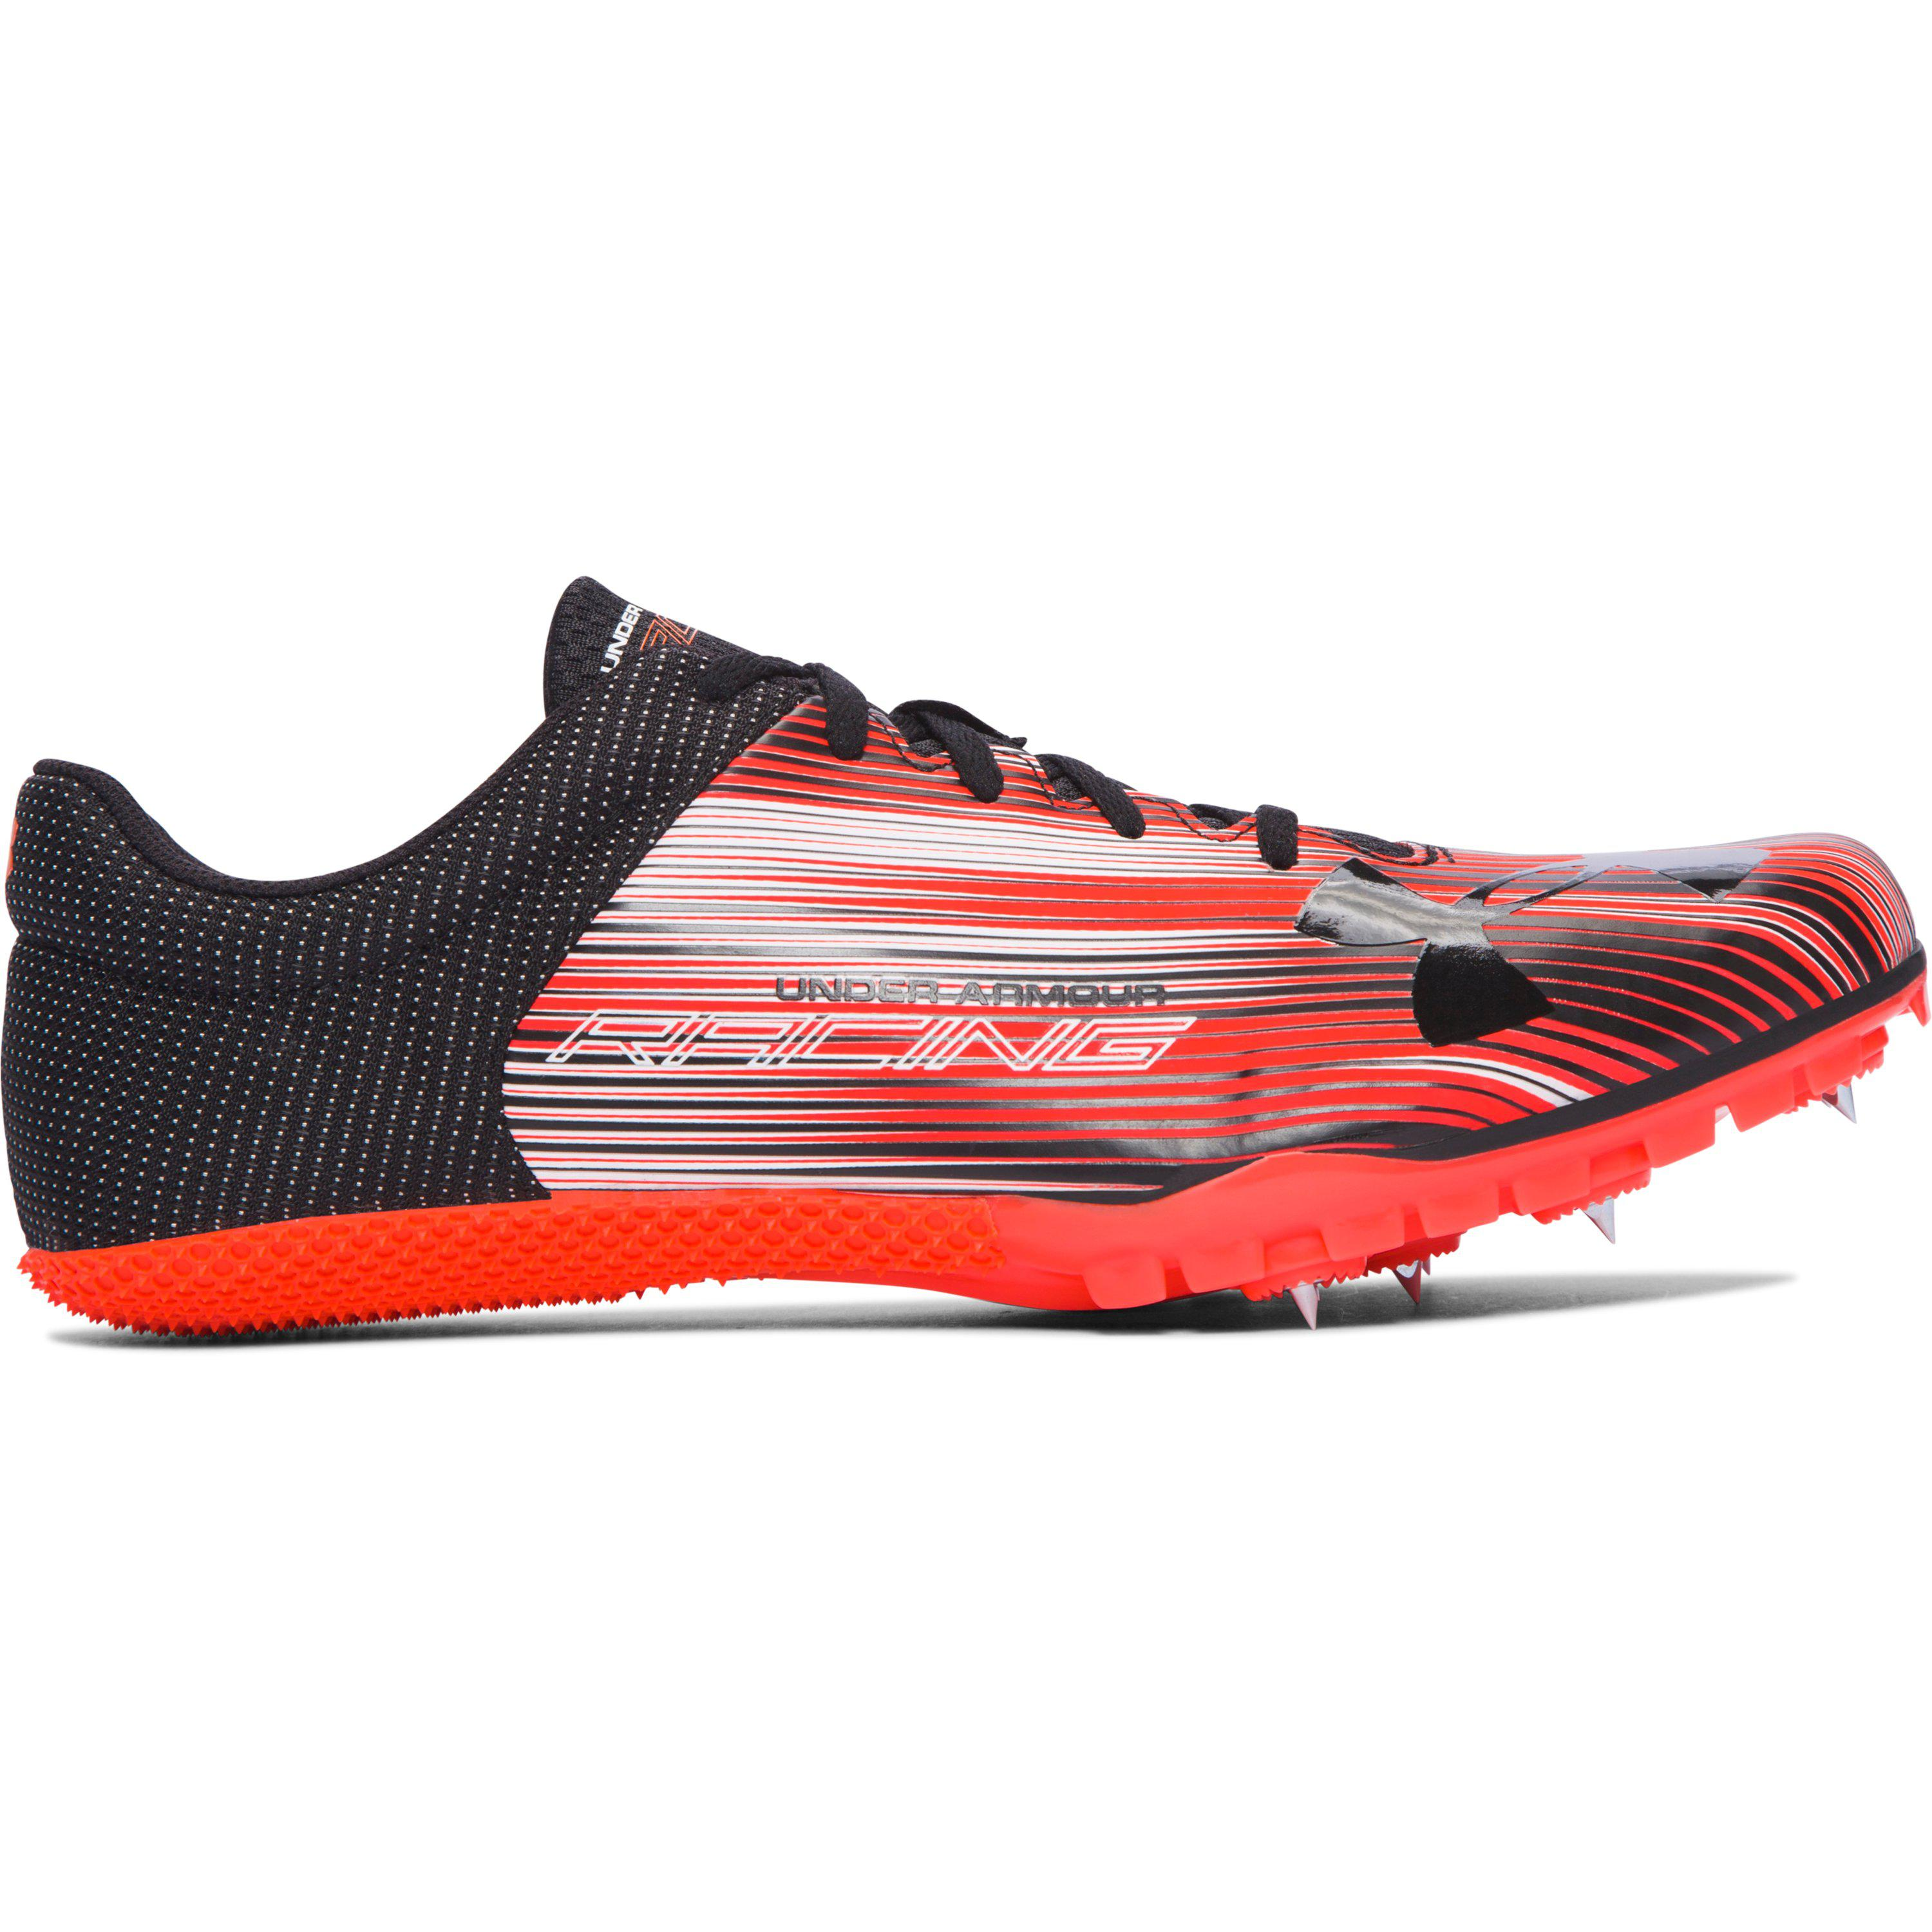 skechers track spikes Shop Clothing